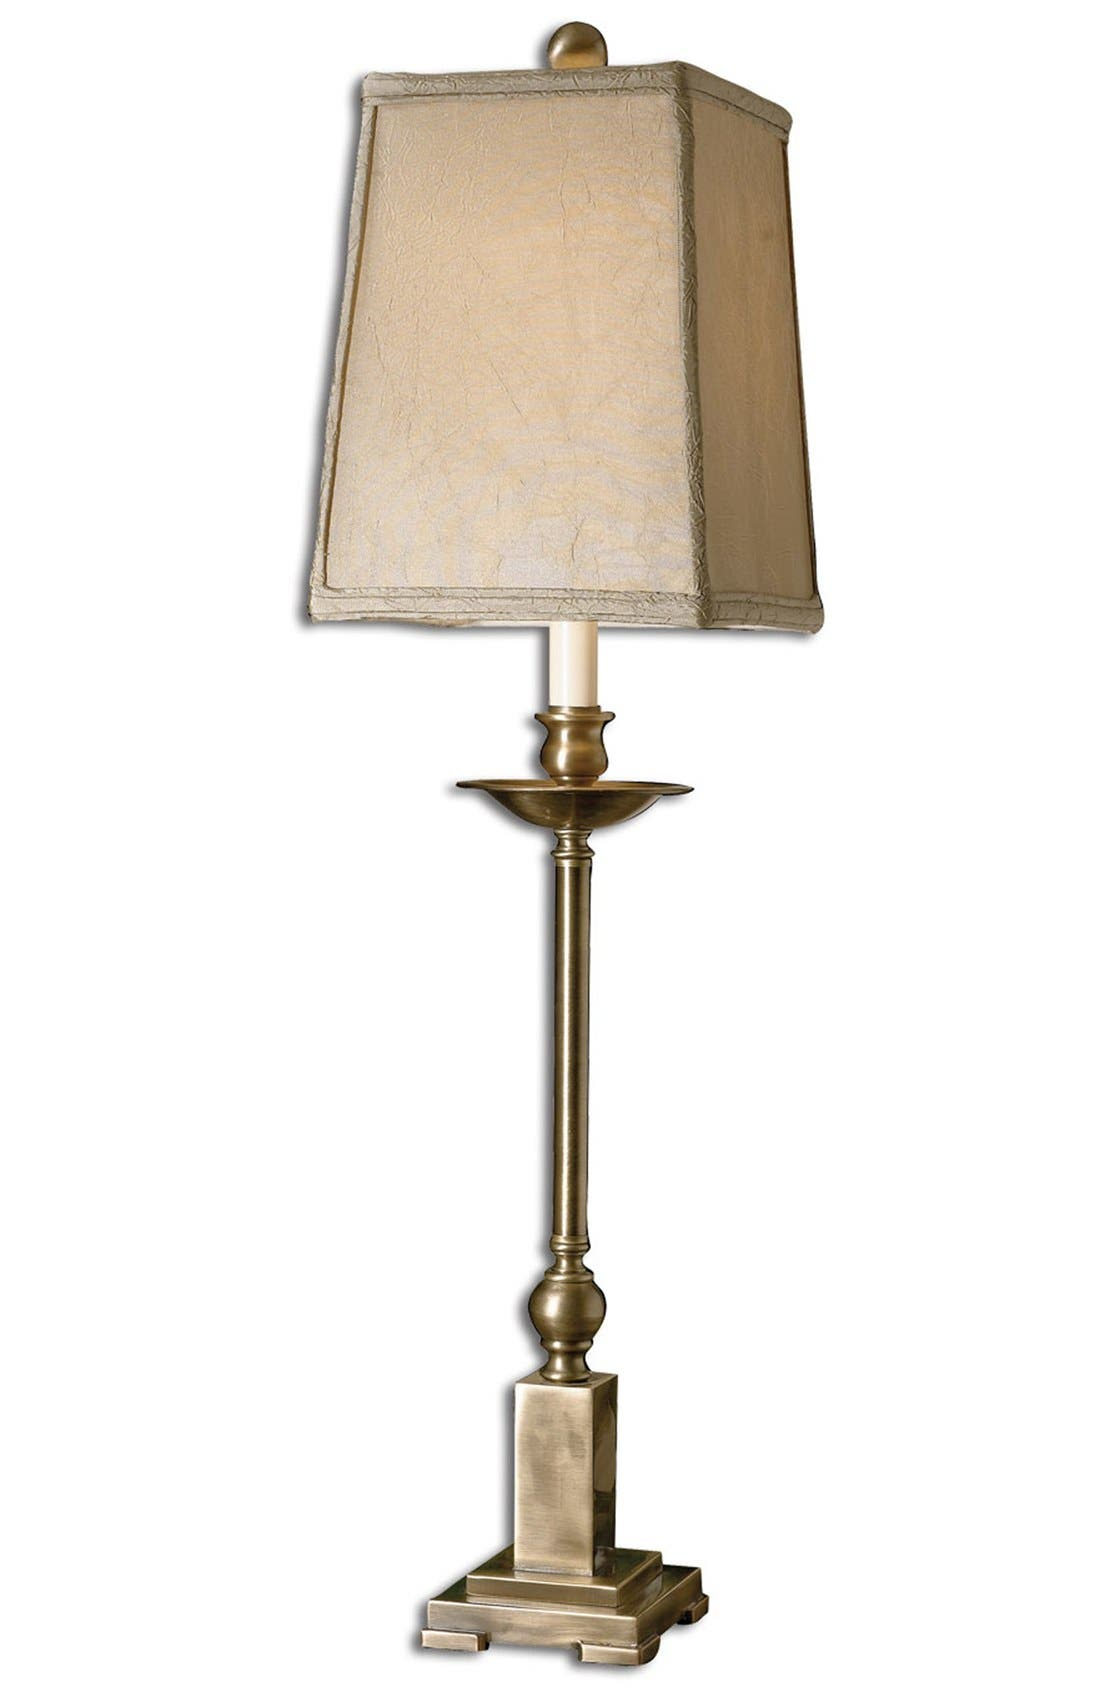 Main Image - Uttermost 'Lowell' Candlestick Buffet Lamp